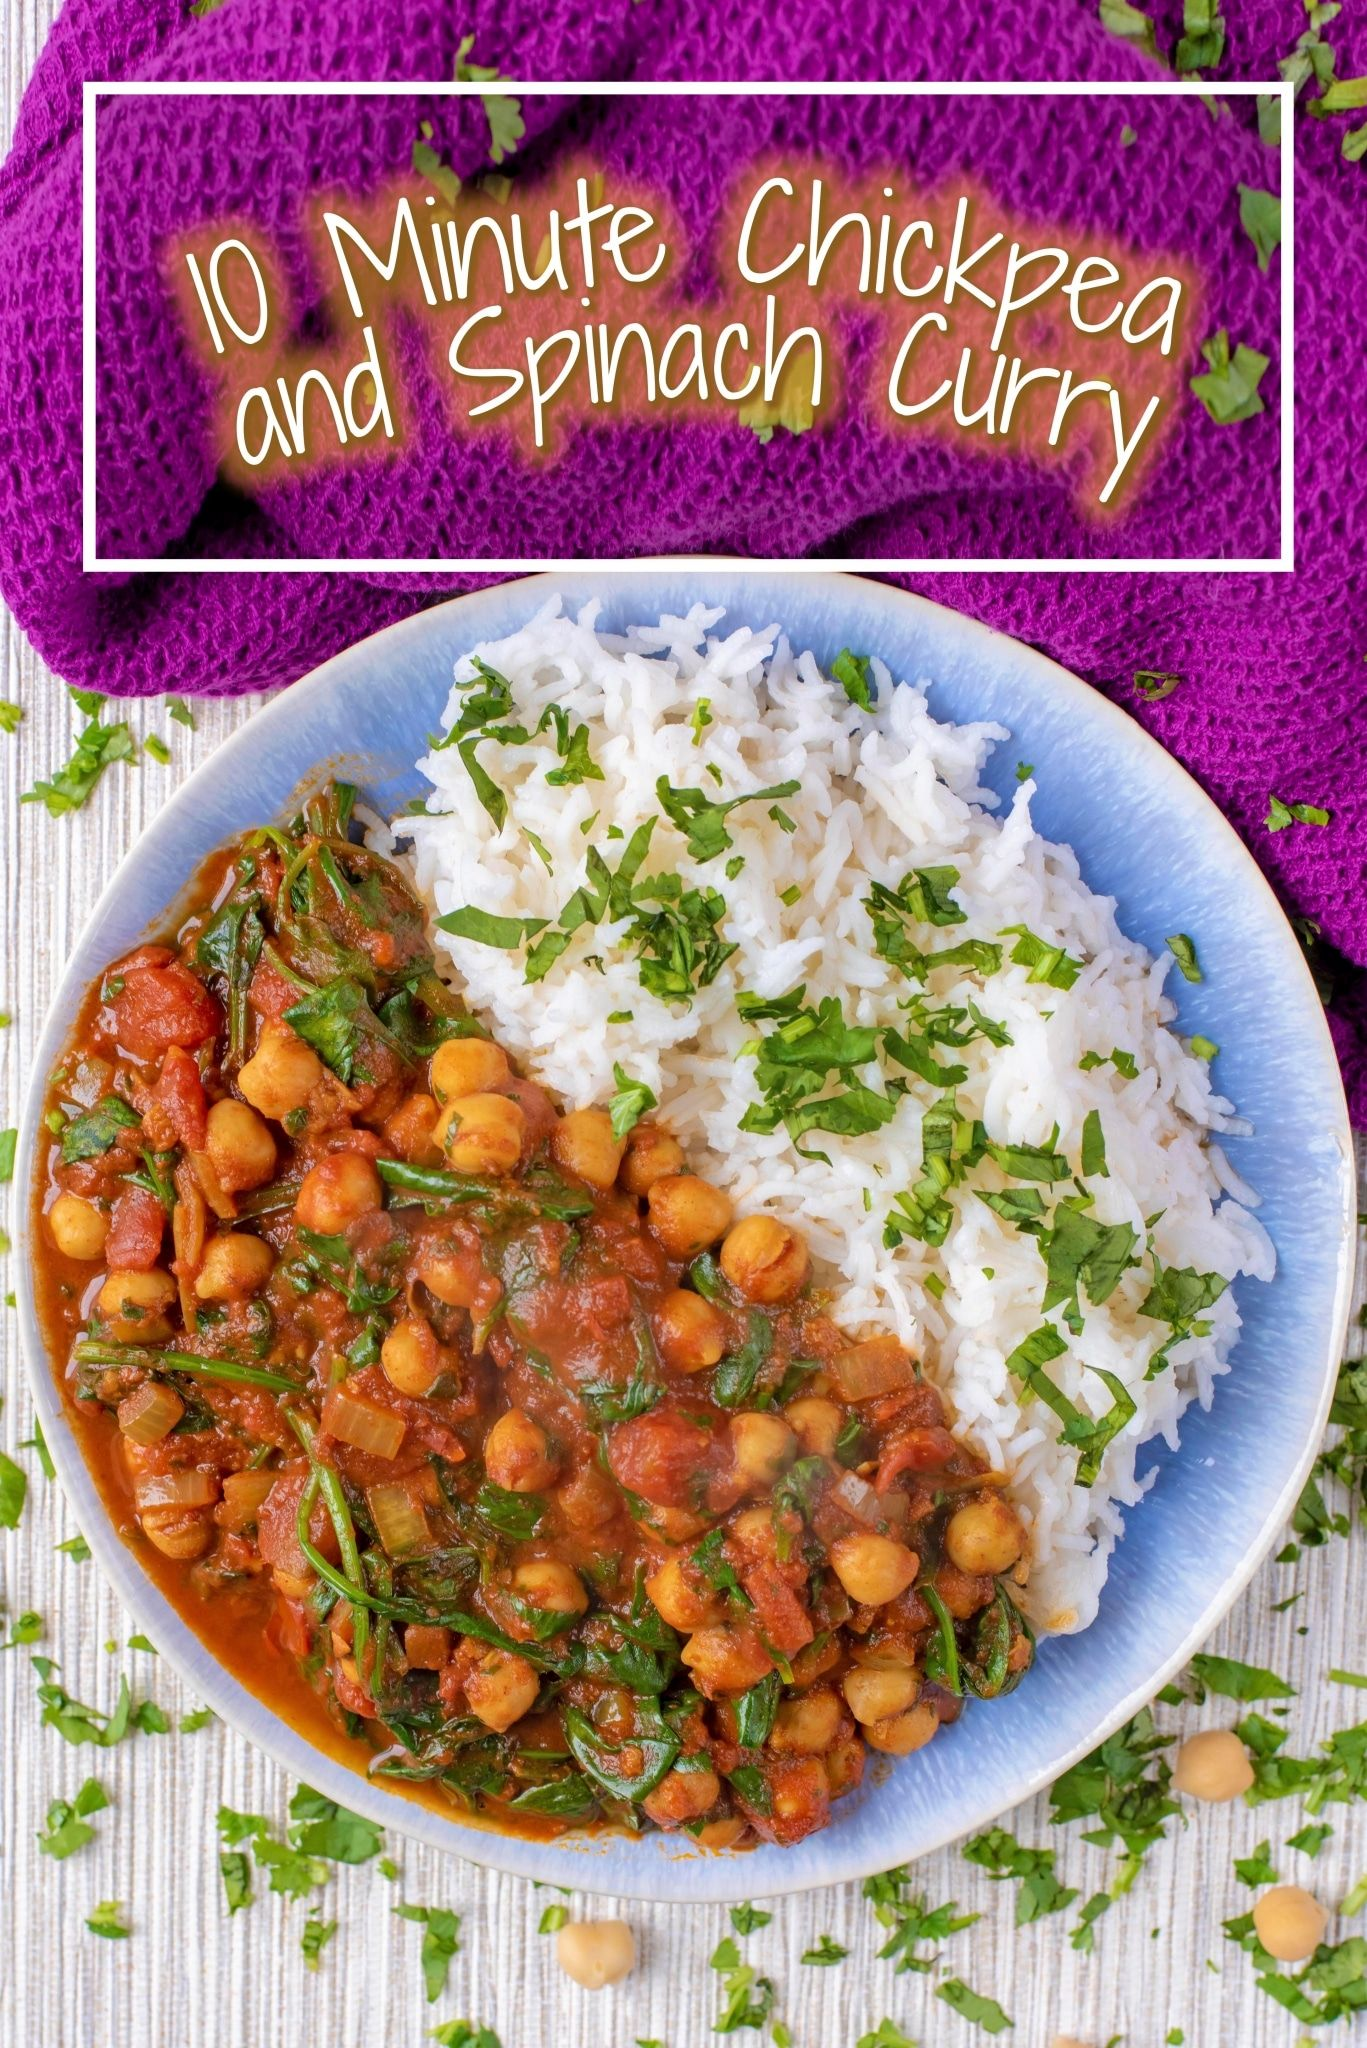 10 Minute Chickpea and Spinach Curry Recipe Vegan